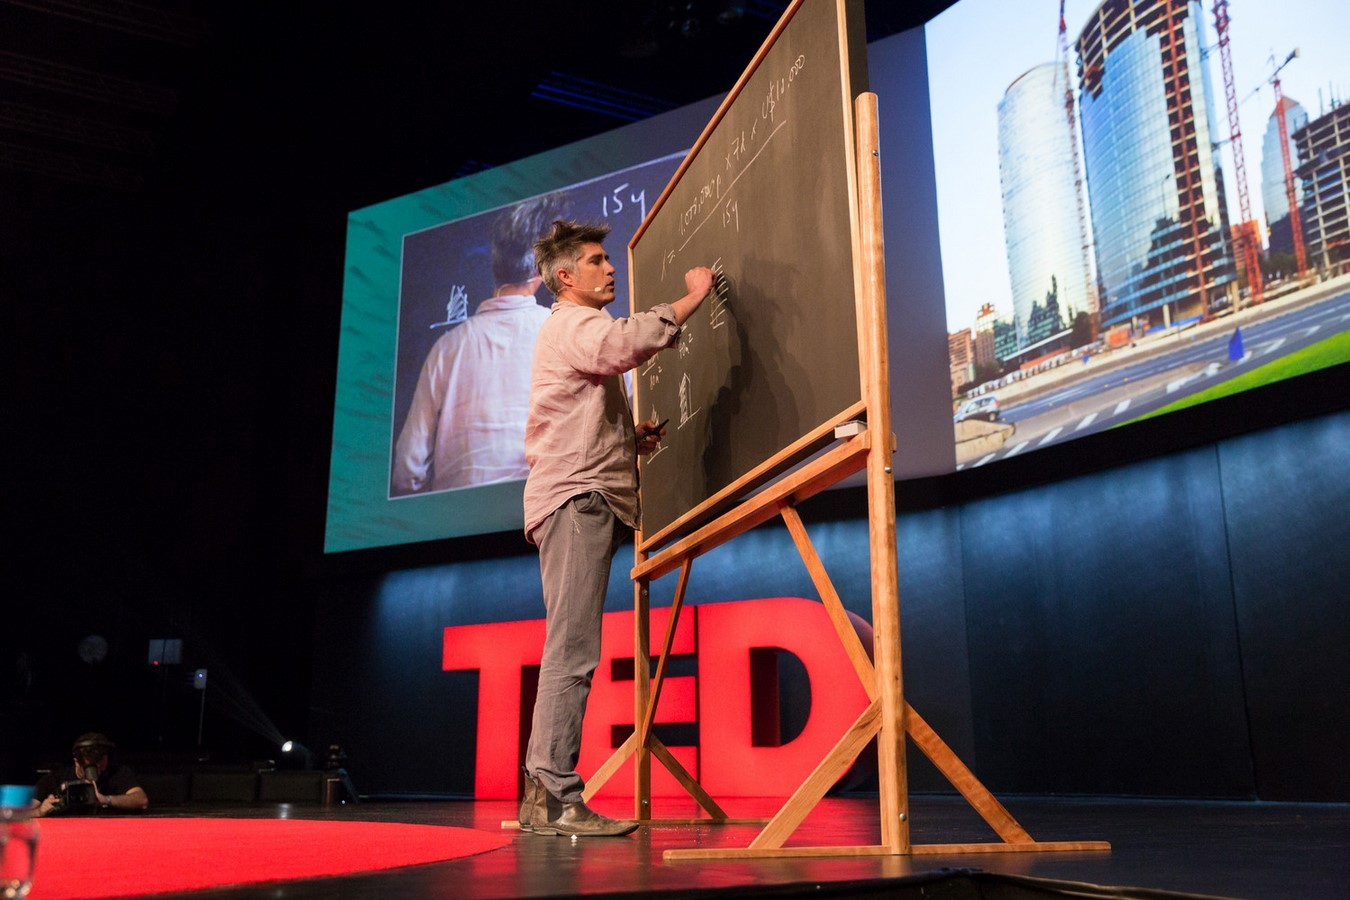 Tedtalk for Architects: Alejandro Aravena: My architectural philosophy? Bring the community into the process - Sheet1